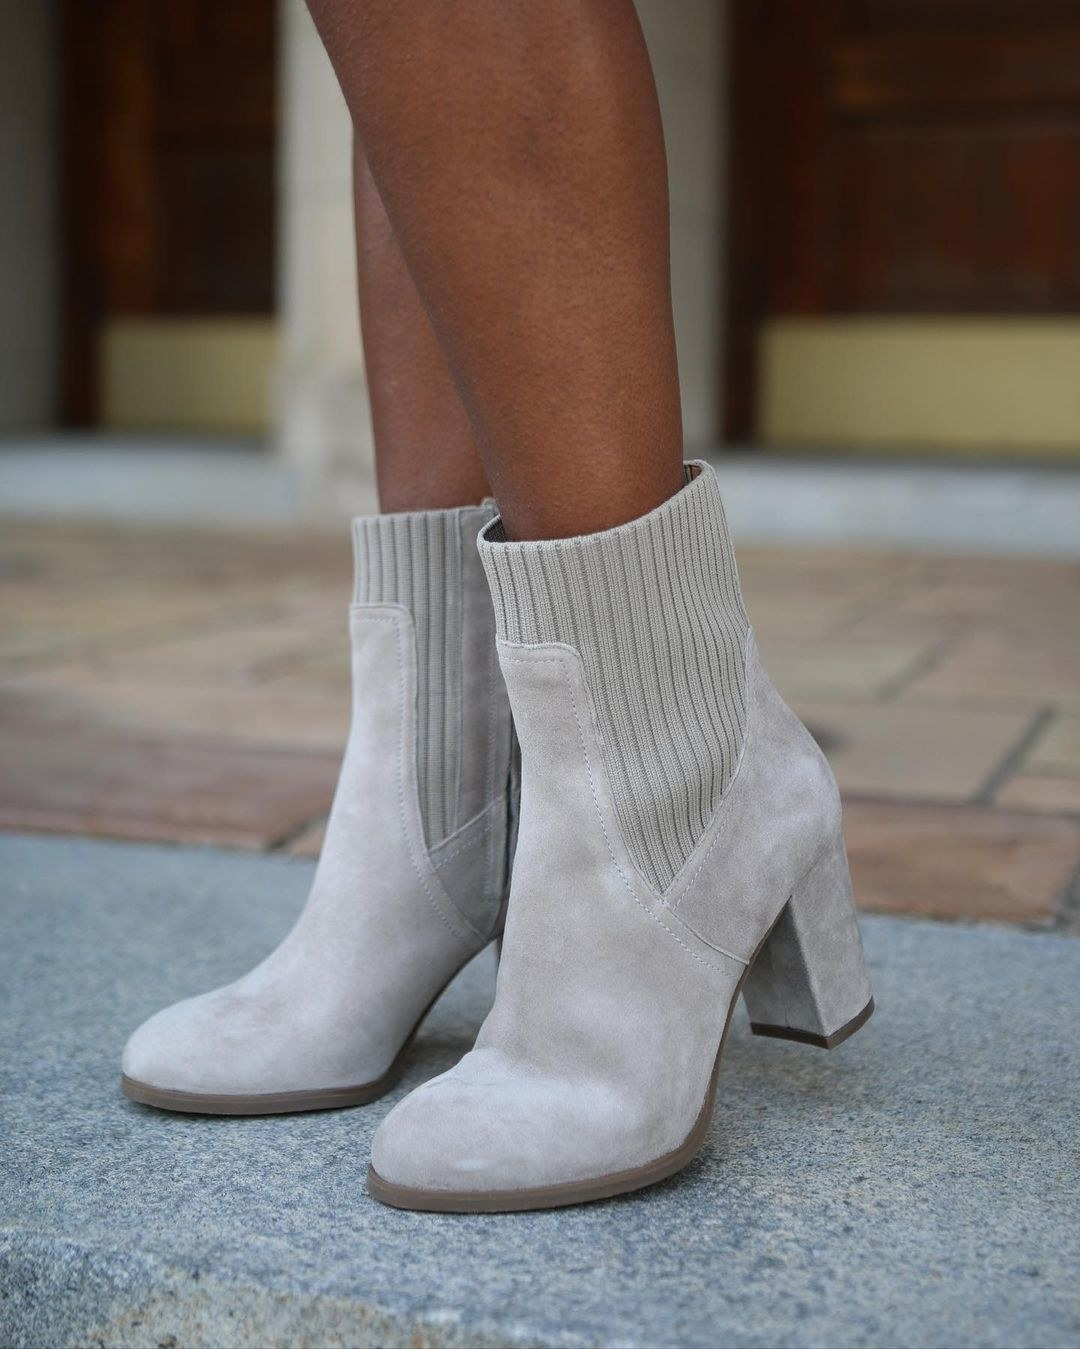 the heeled ankle boot with knit upper and suede fabric in cream